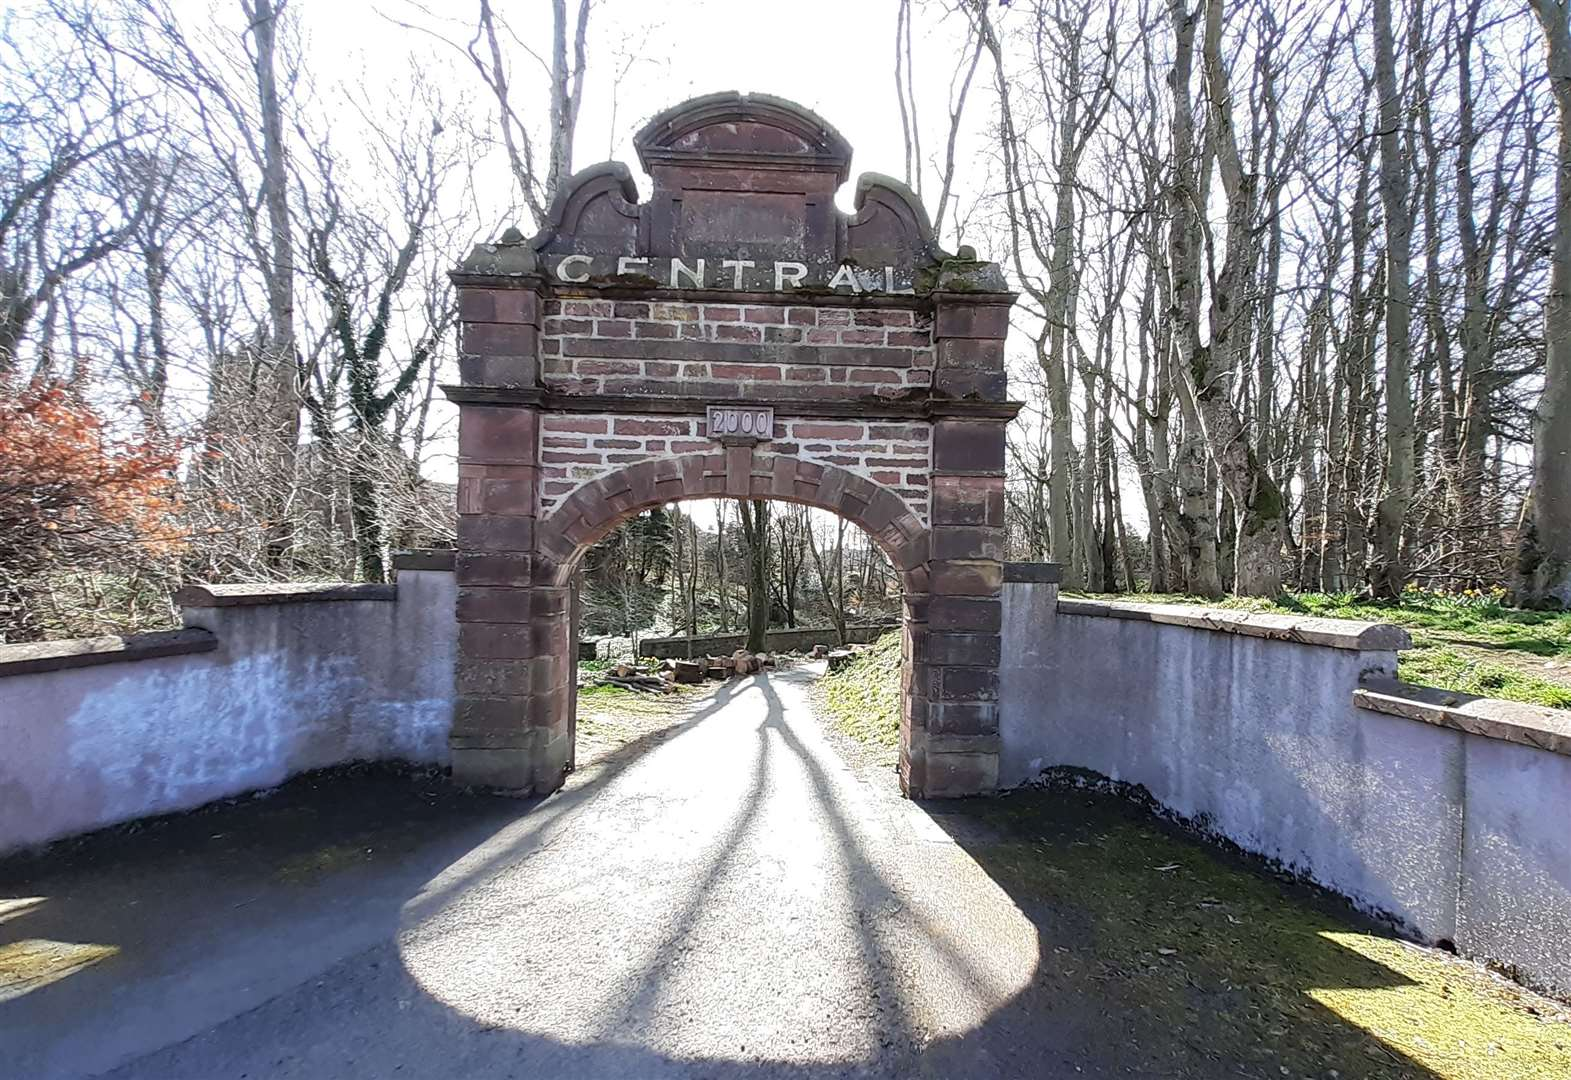 Public comments sought on access to Turriff's Haughs